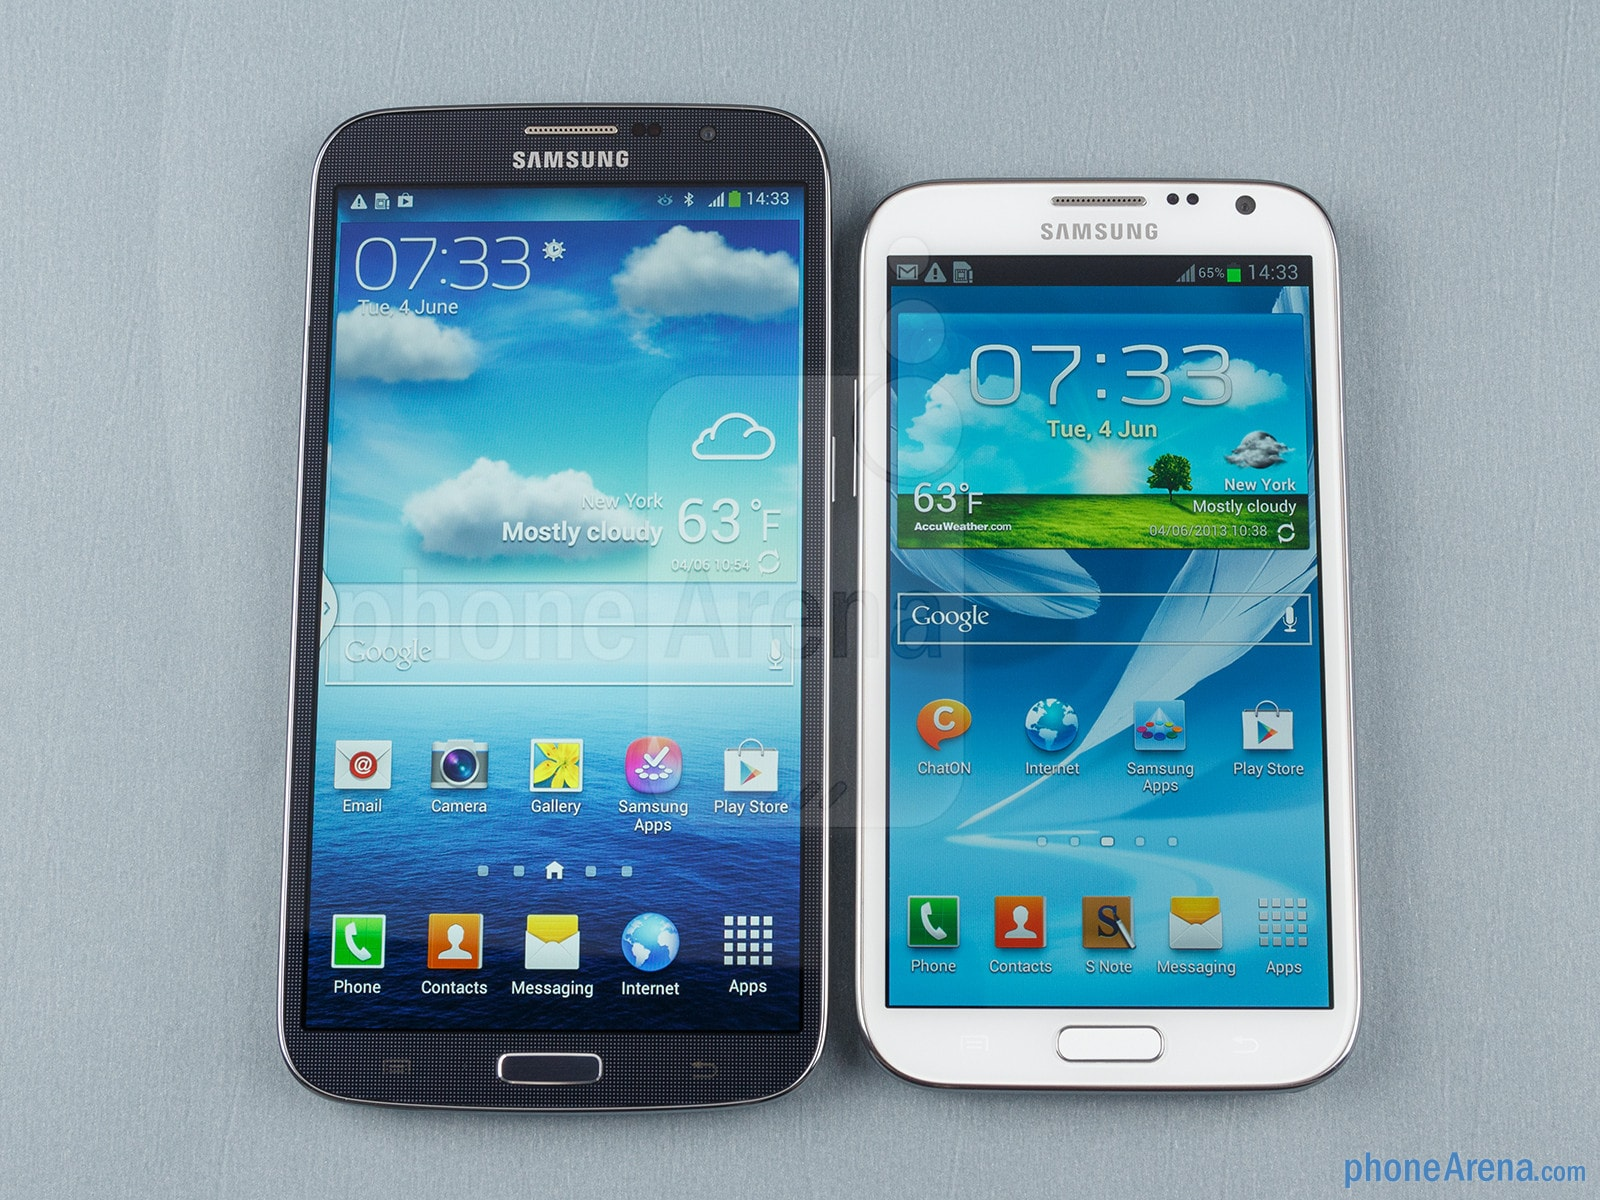 Samsung-Galaxy-Mega-6.3-vs-Galaxy-Note-II-001.jpg